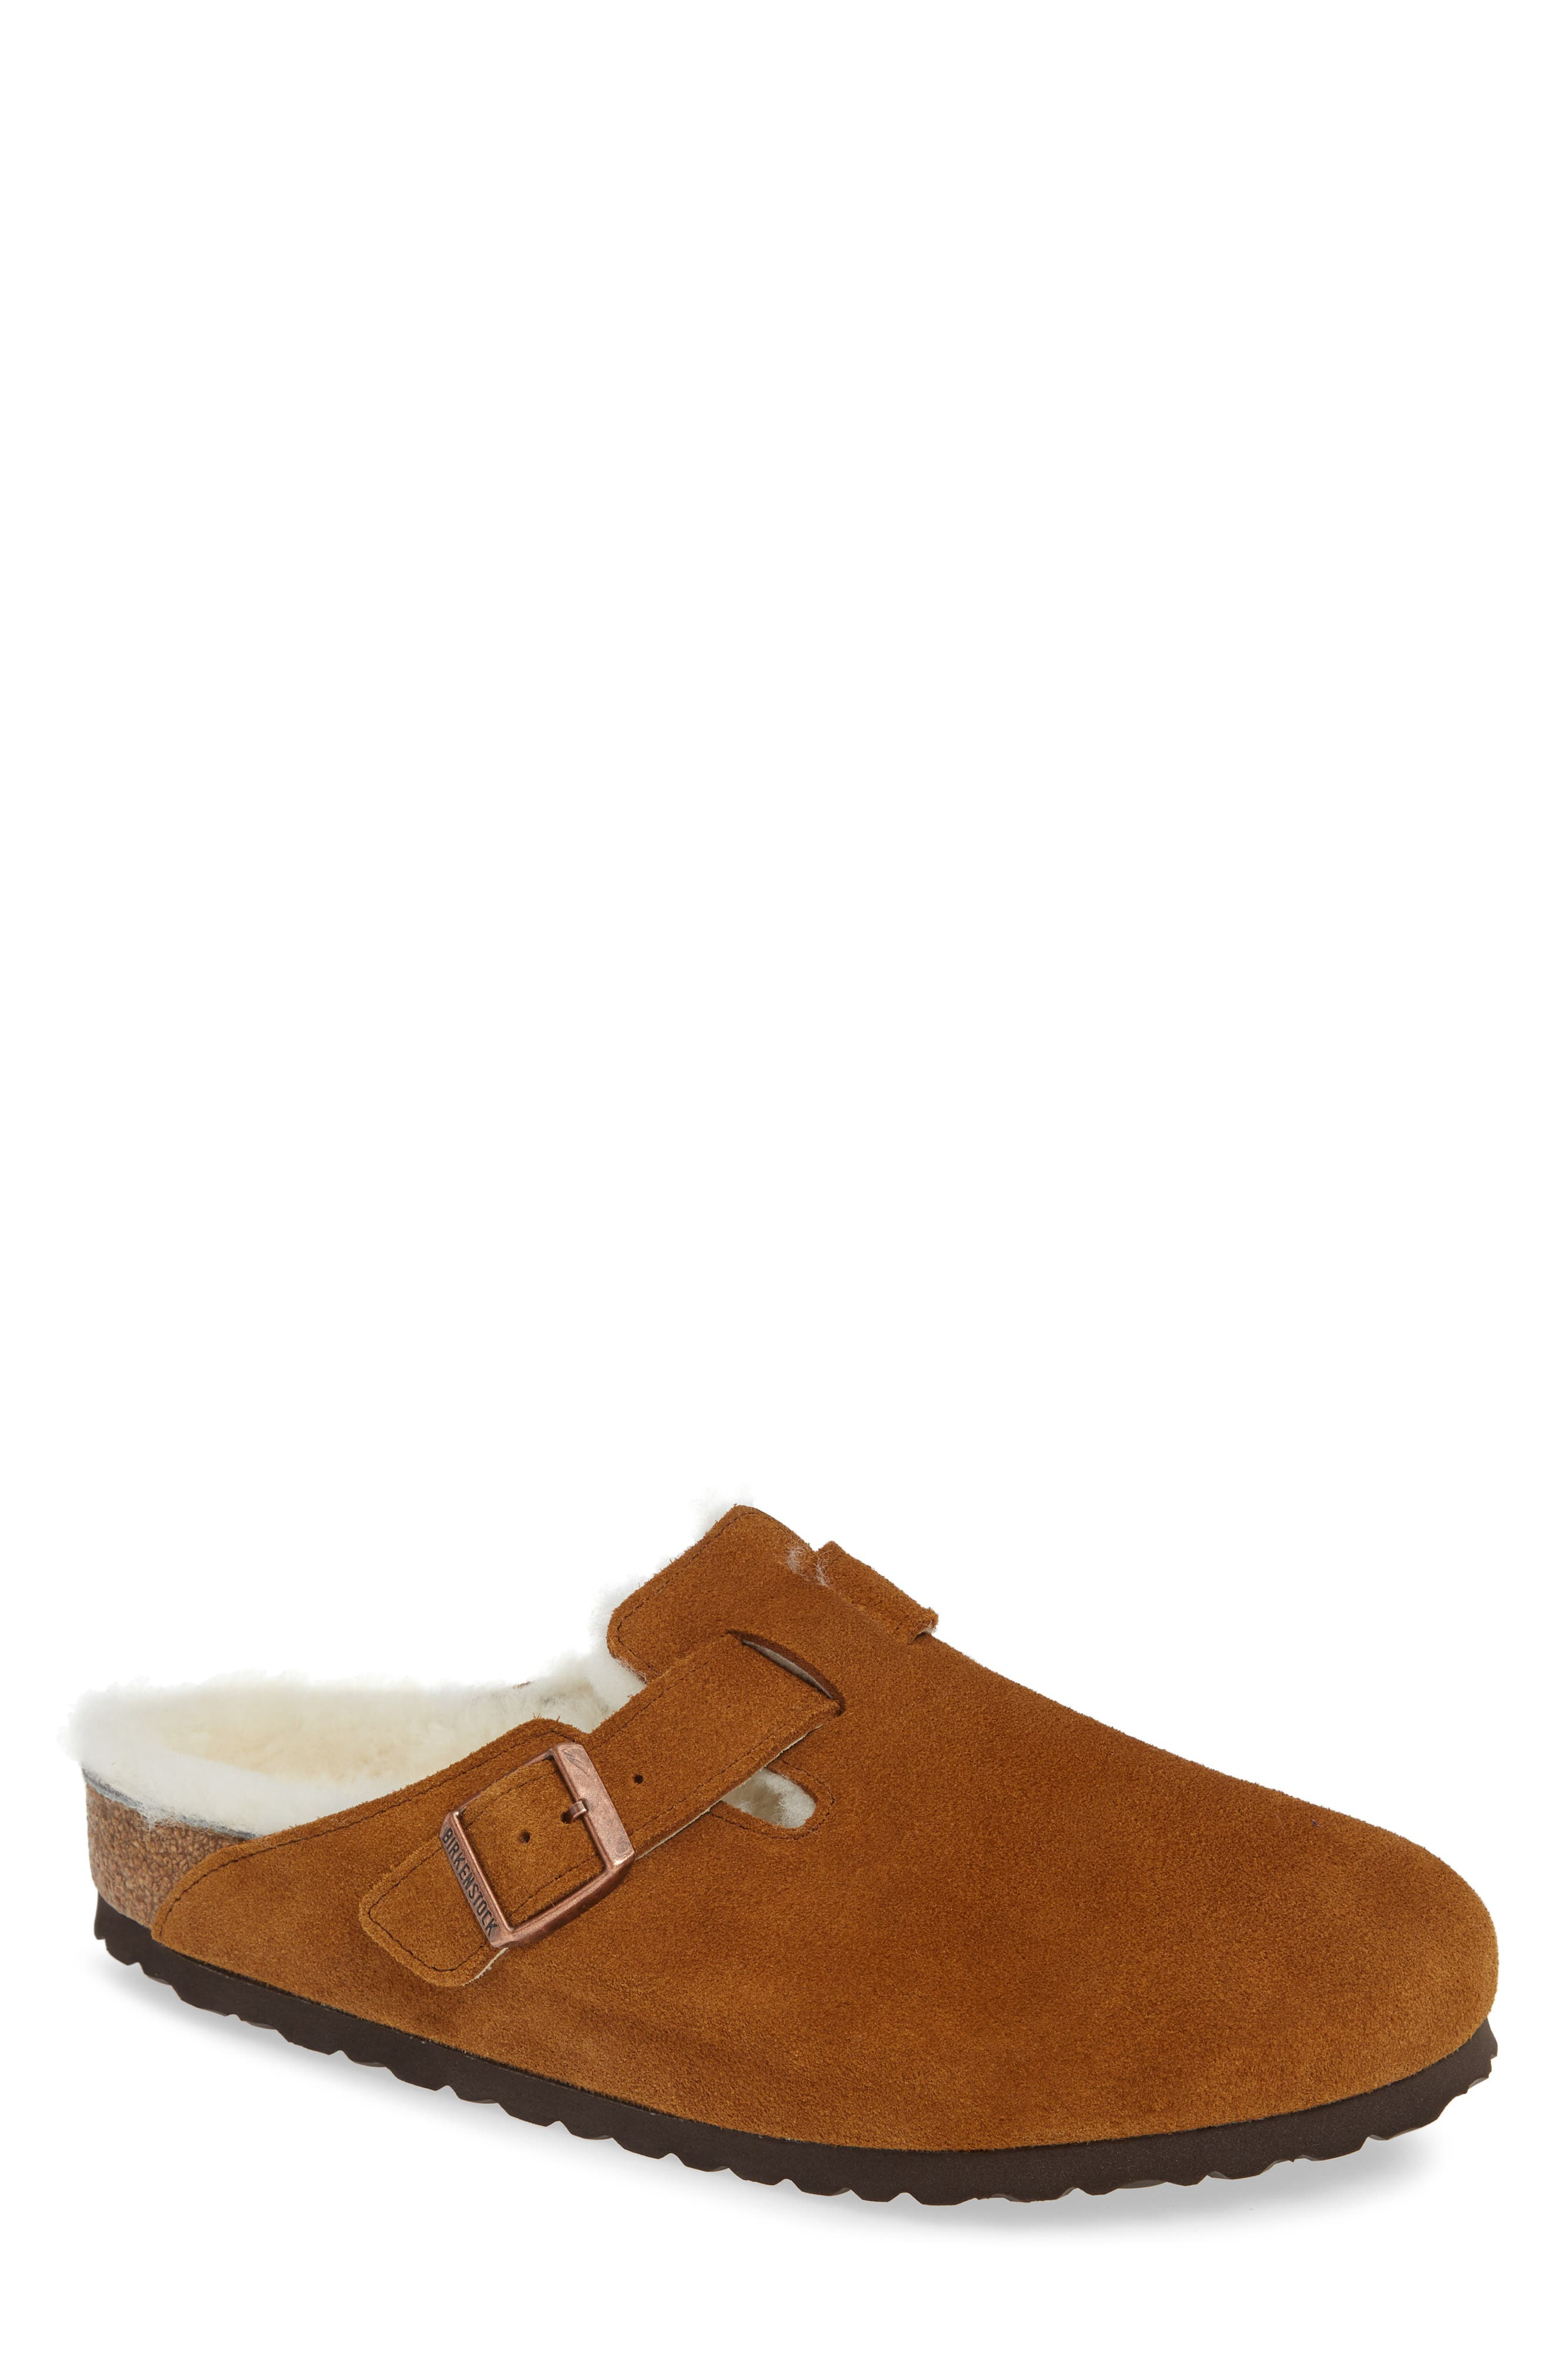 Boston Slip-On with Genuine Shearling Lining,                             Main thumbnail 1, color,                             BEIGE